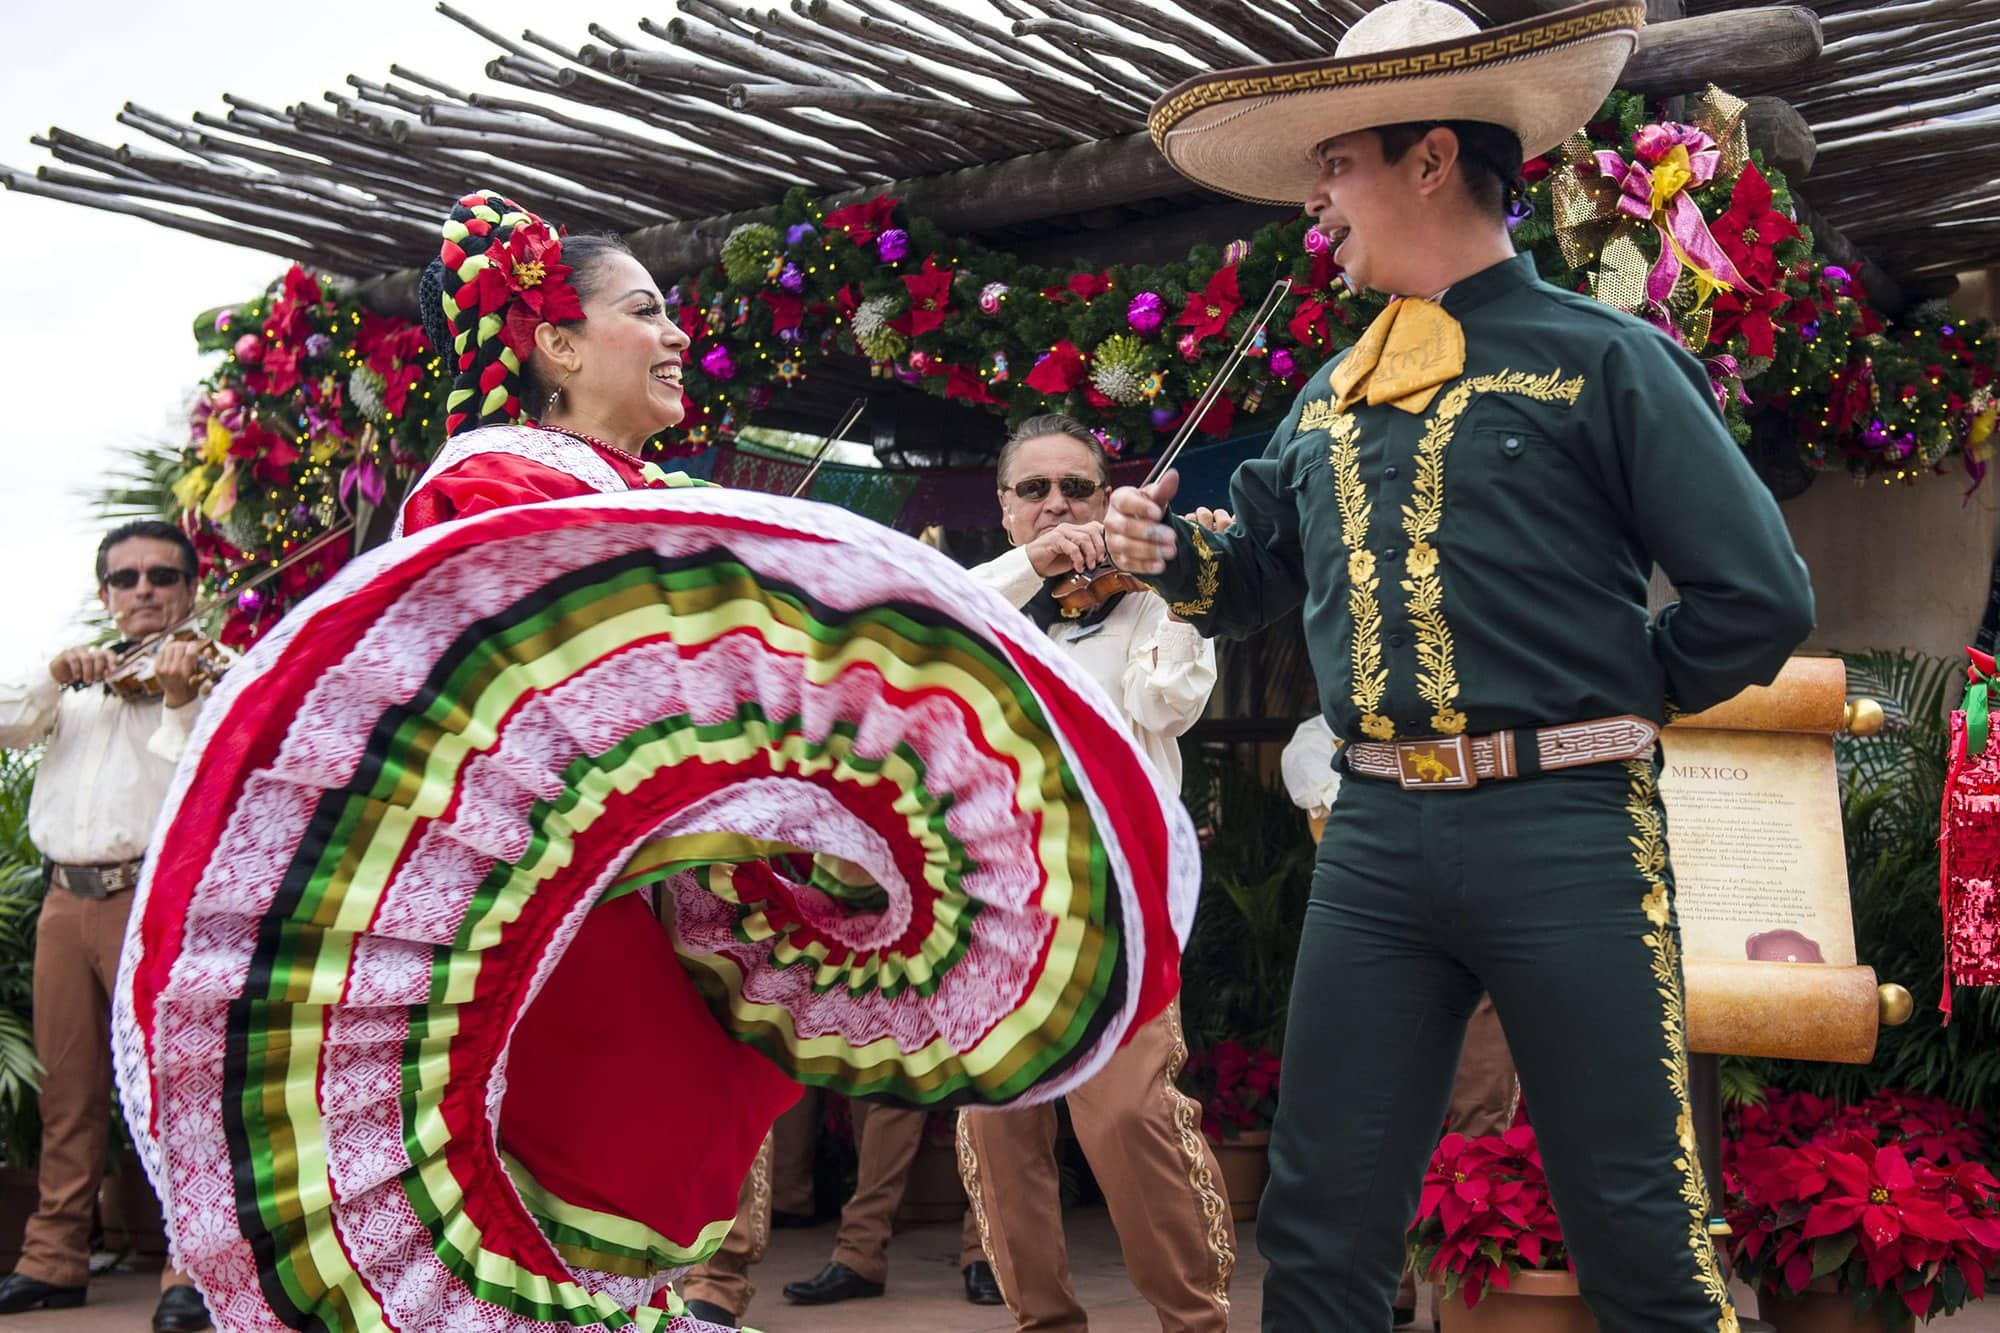 Festive mariachi band music and dancing at the Mexico pavilion at Epcot with kids for Holidays Around the World